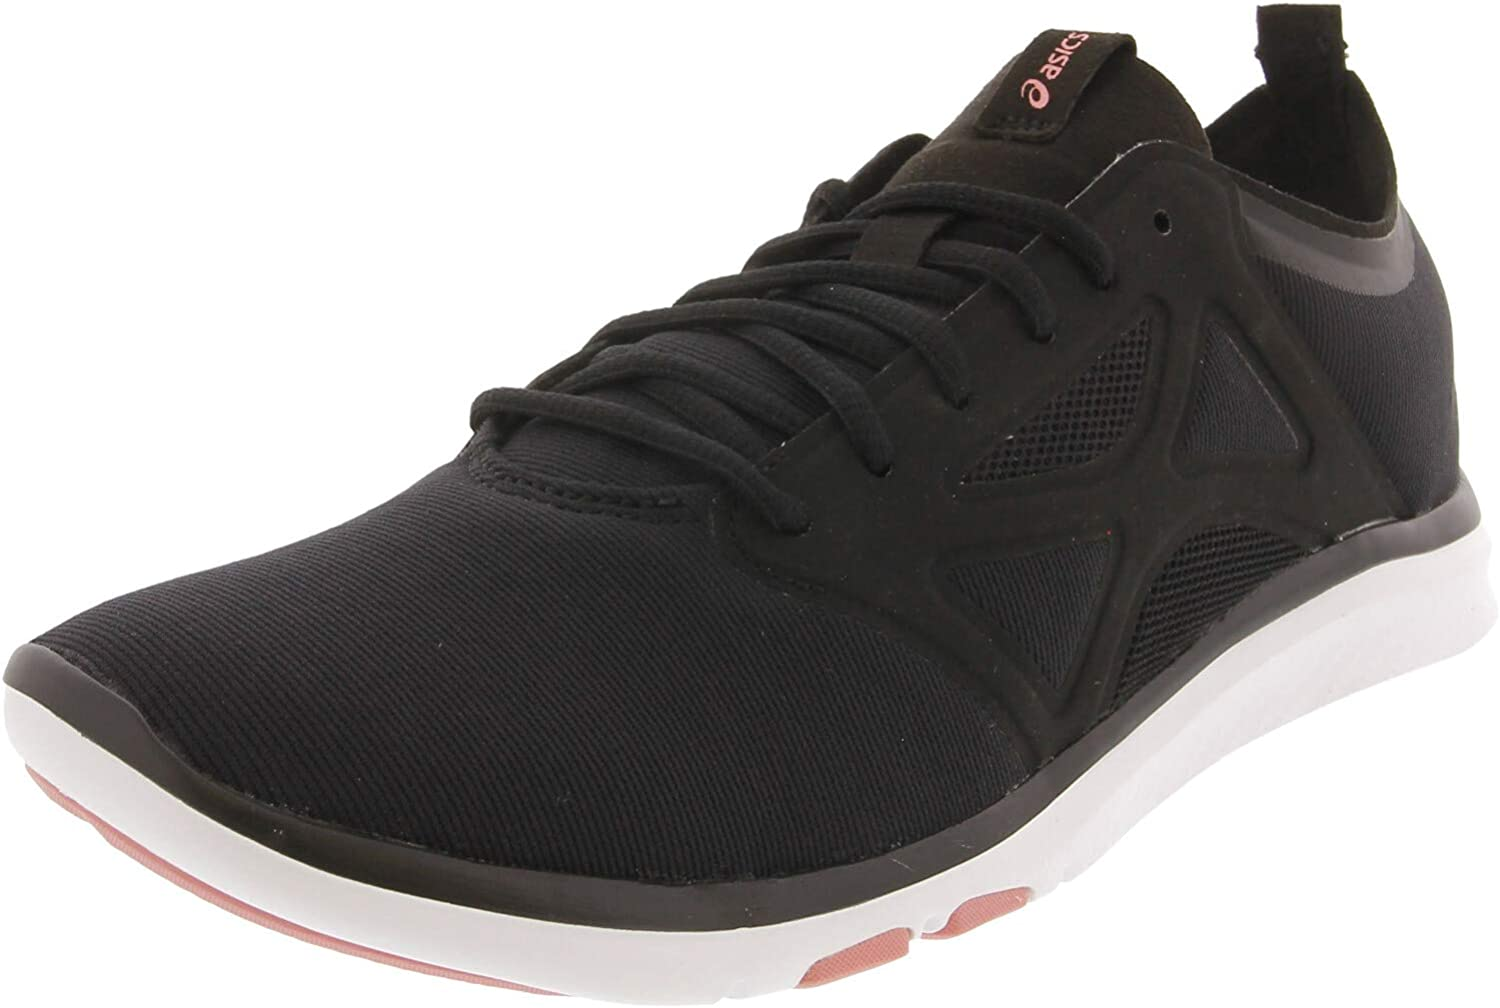 Max 68% OFF San Jose Mall ASICS Women's Gel-Fit Yui Training 2 Shoes